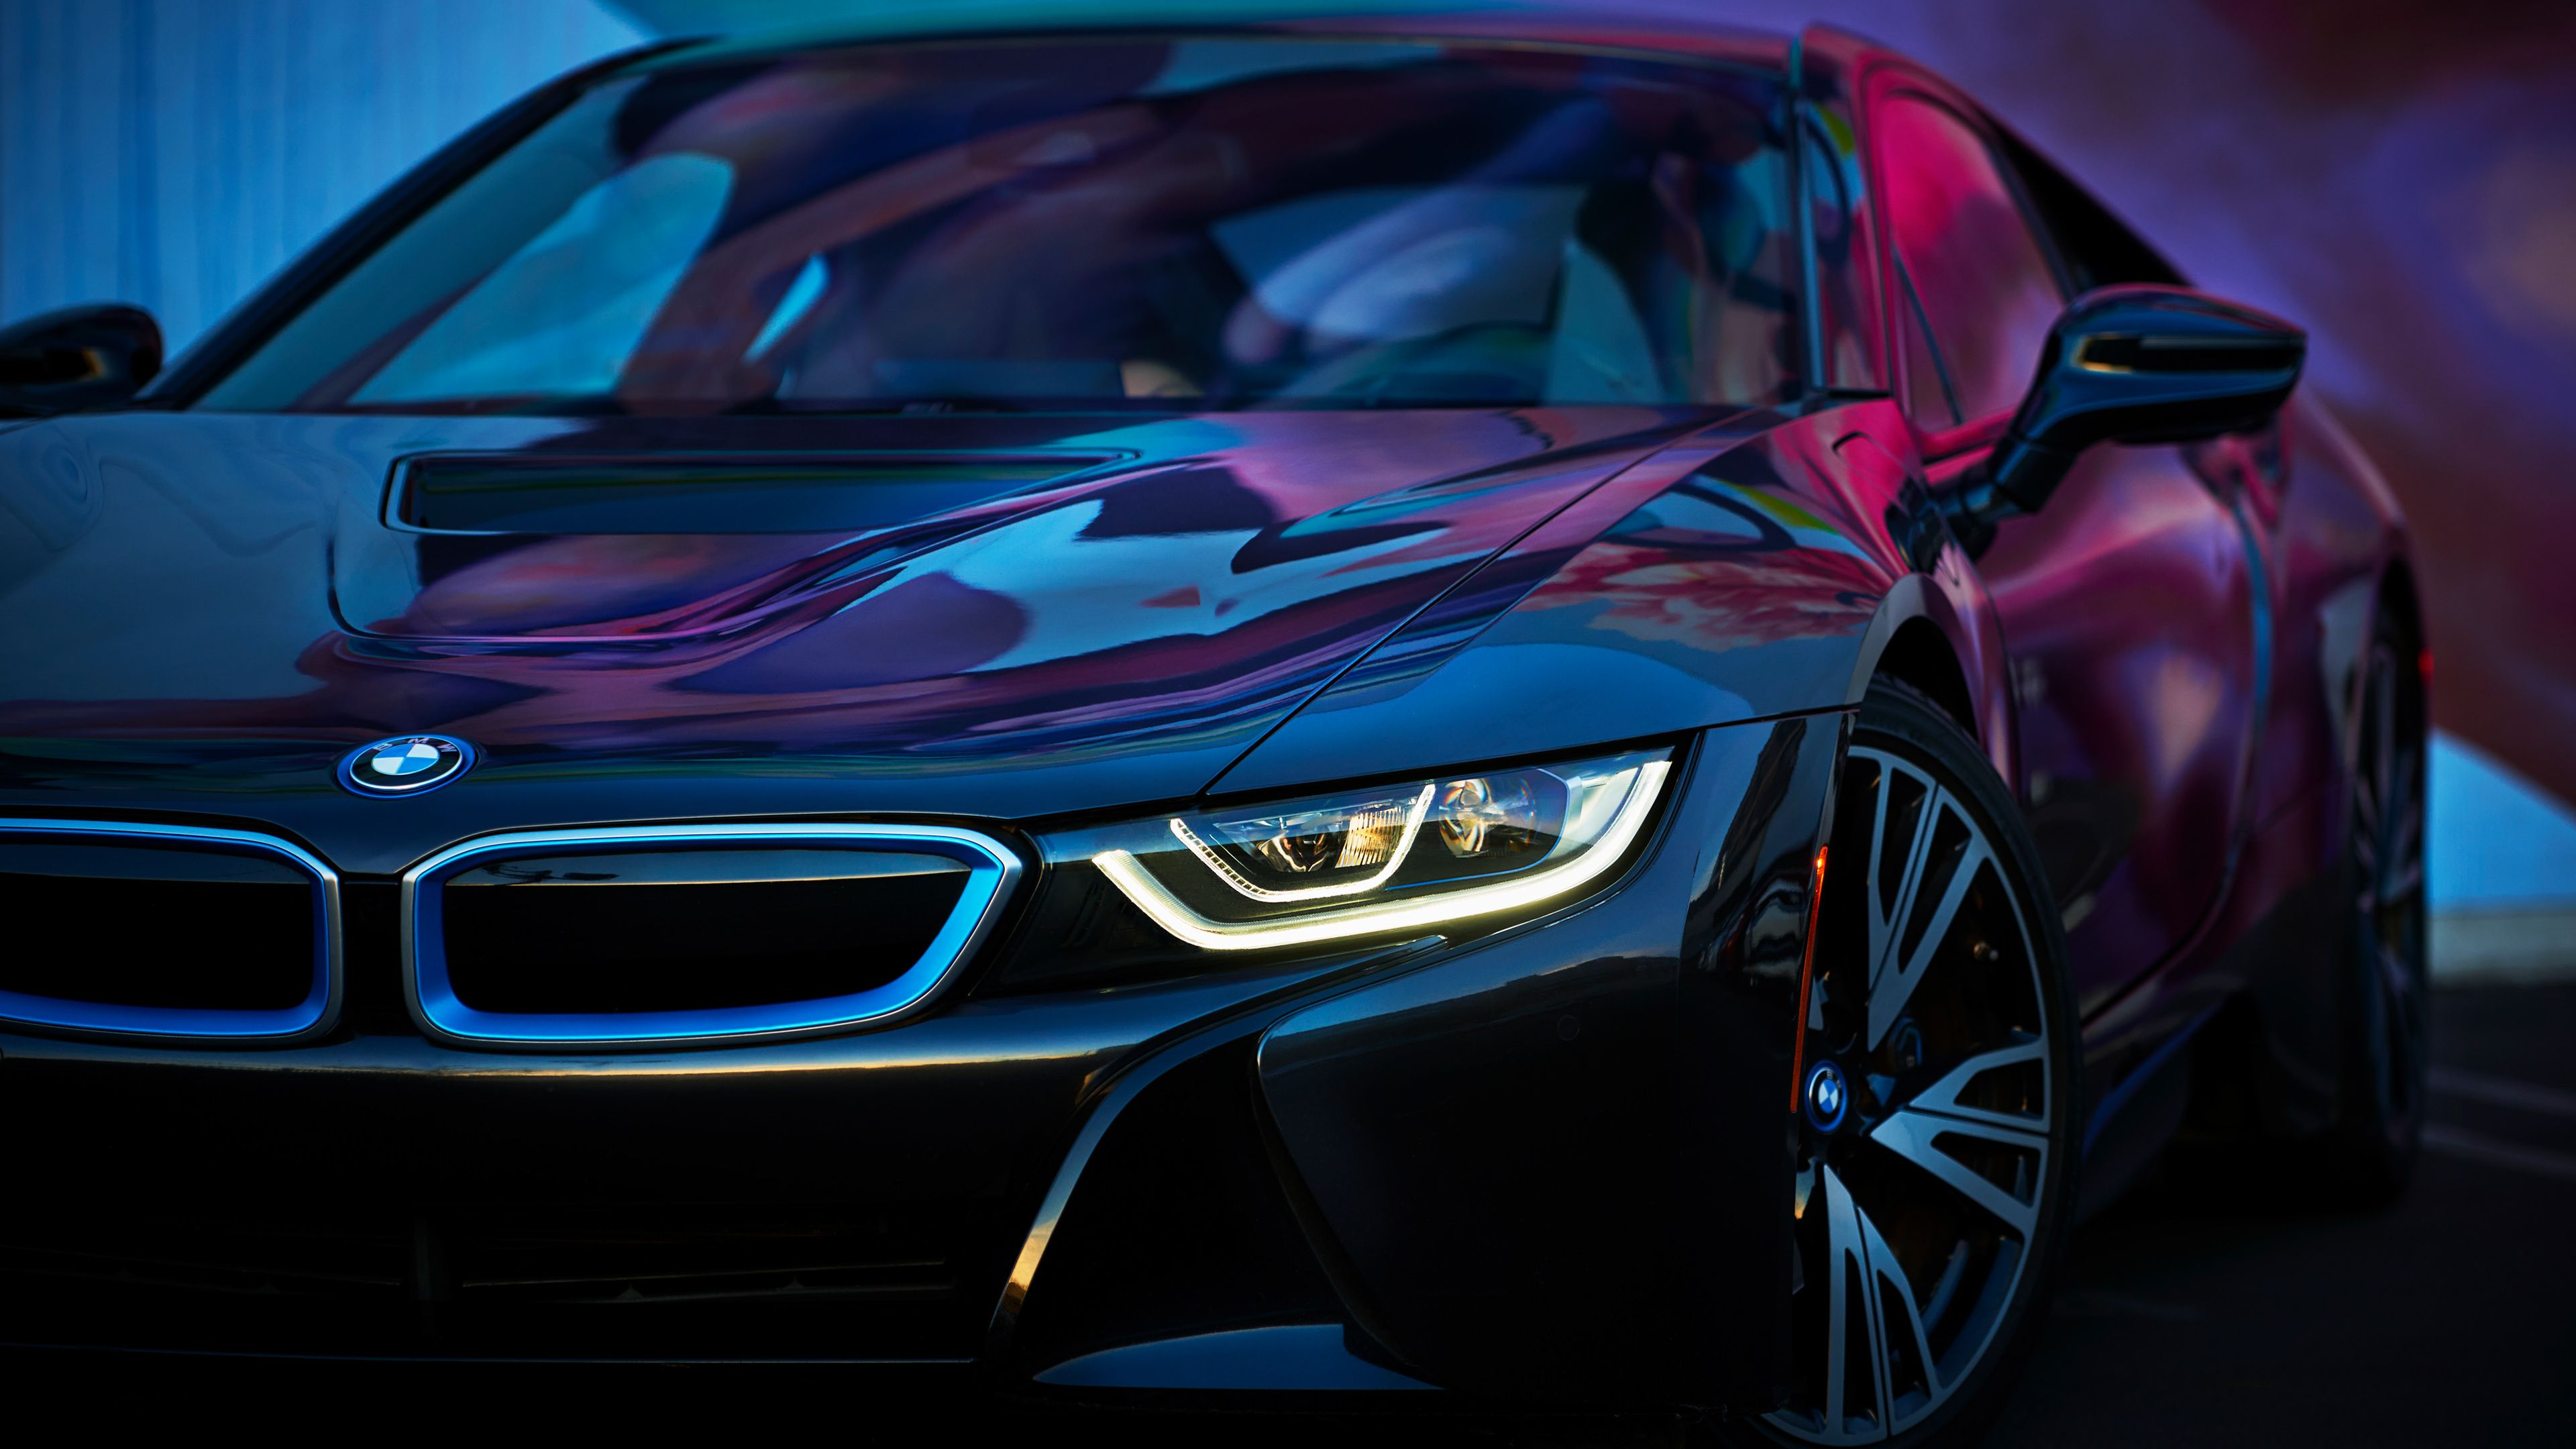 Wallpaper 4k Bmw I8 2018 2018 Cars Wallpapers 4k Wallpapers Bmw